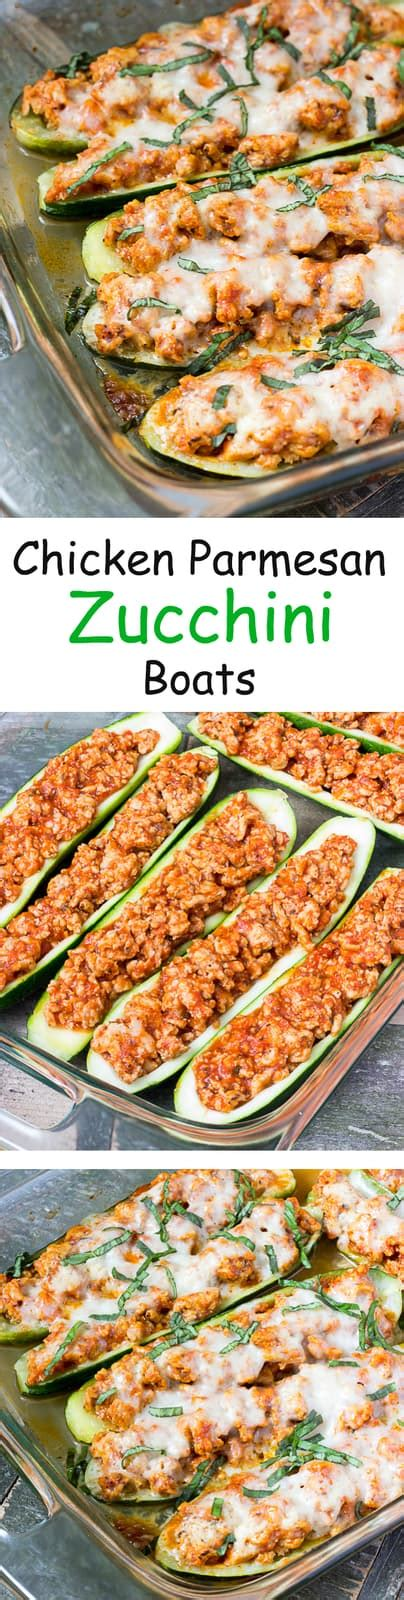 Chicken Parmesan Zucchini Boats by Chicken Parmesan Zucchini Boats The Wholesome Dish